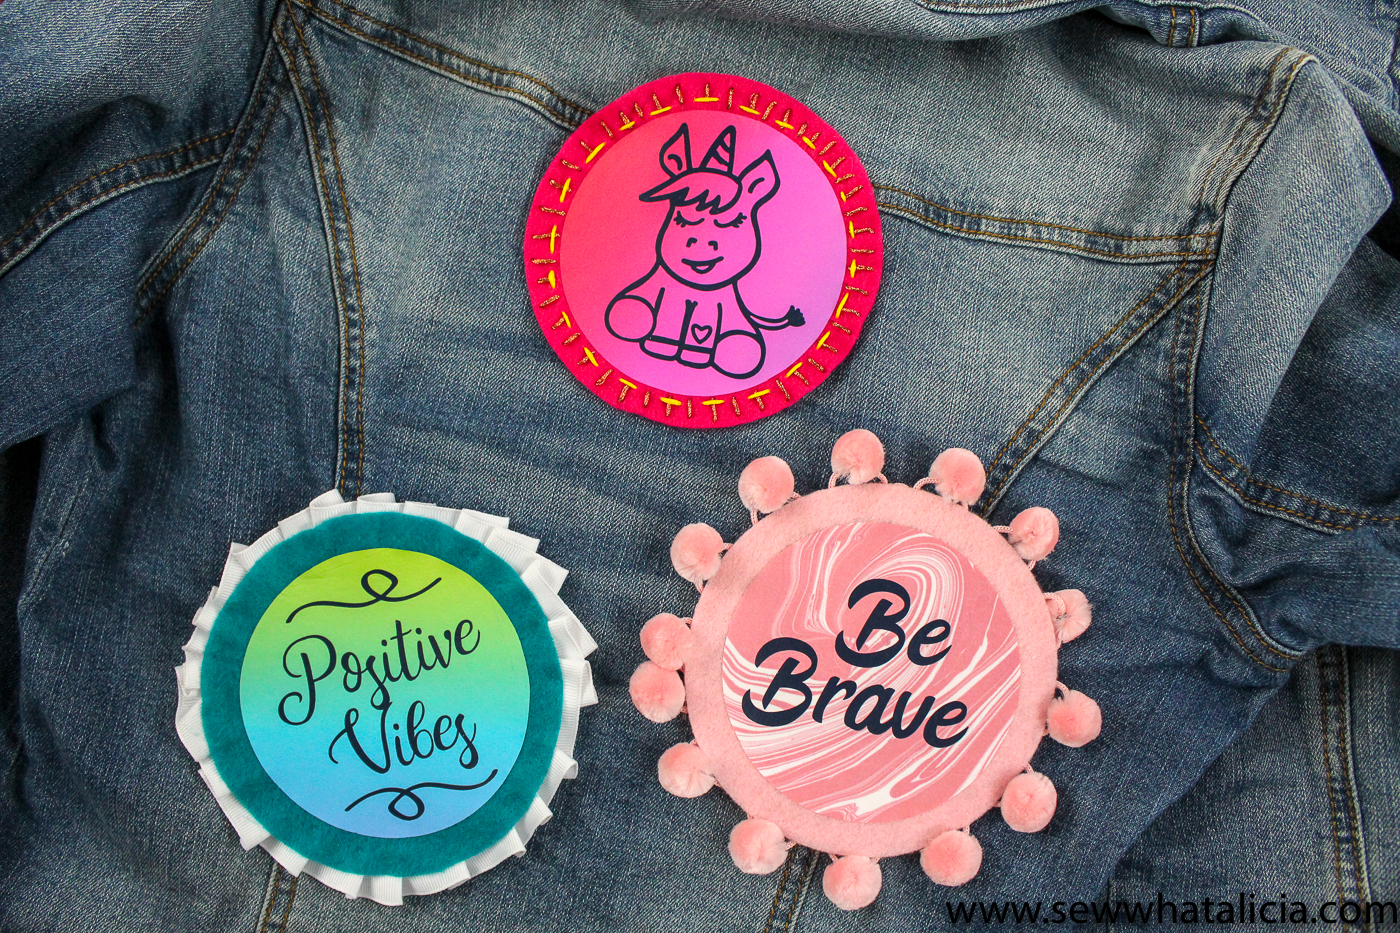 Quick and Easy DIY Patches: With a few supplies you can create custom patches that are sure to be a big hit! Click through for the free cut files and instructions.   www.sewwhatalicia.com